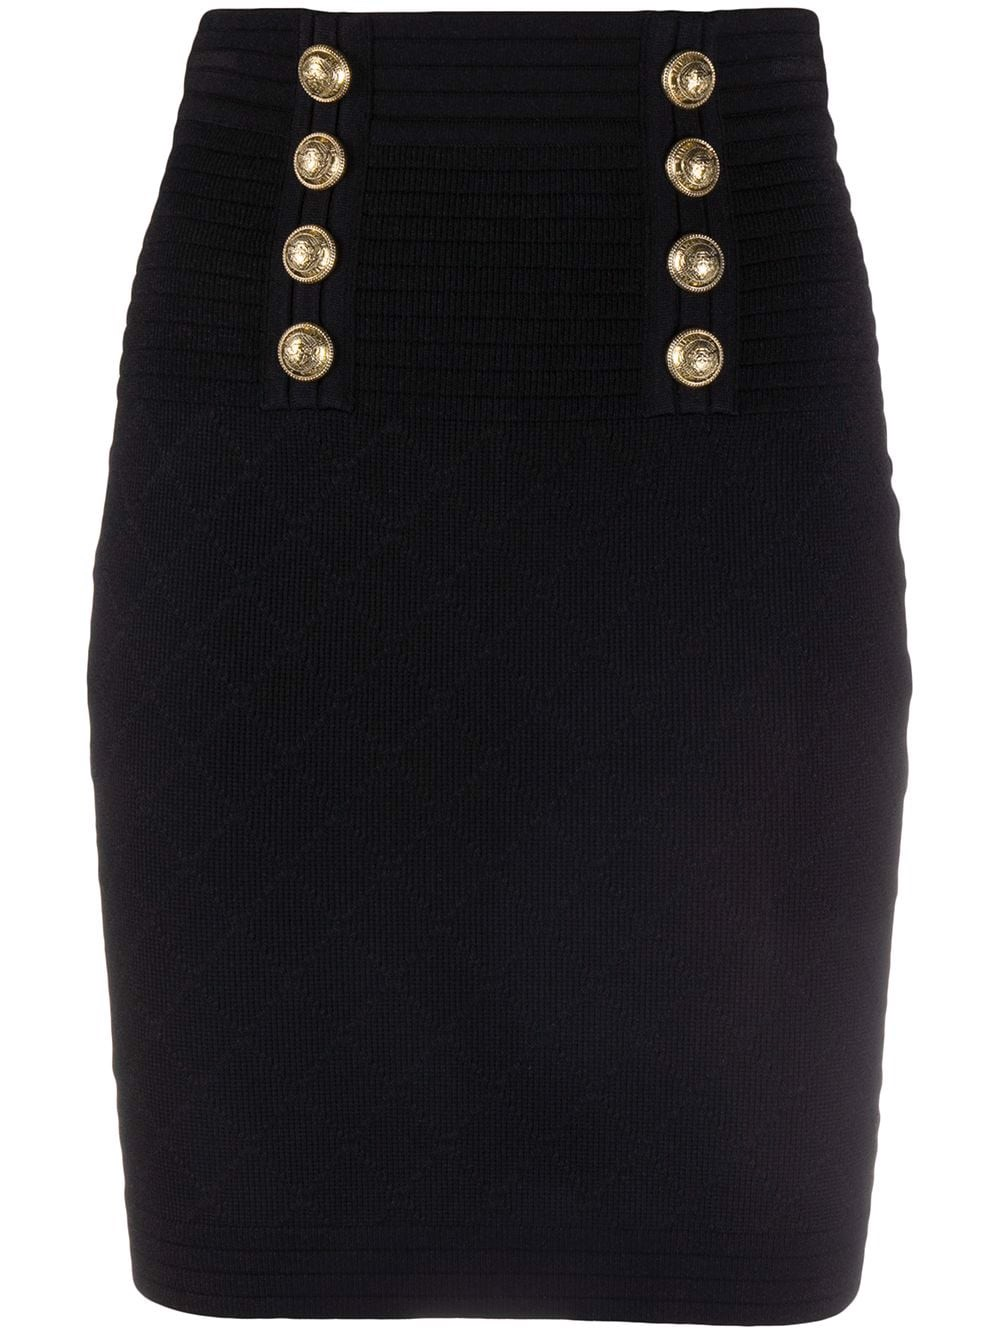 HIGH WAIST 6 BTN DIAMOND KNIT SKIRT